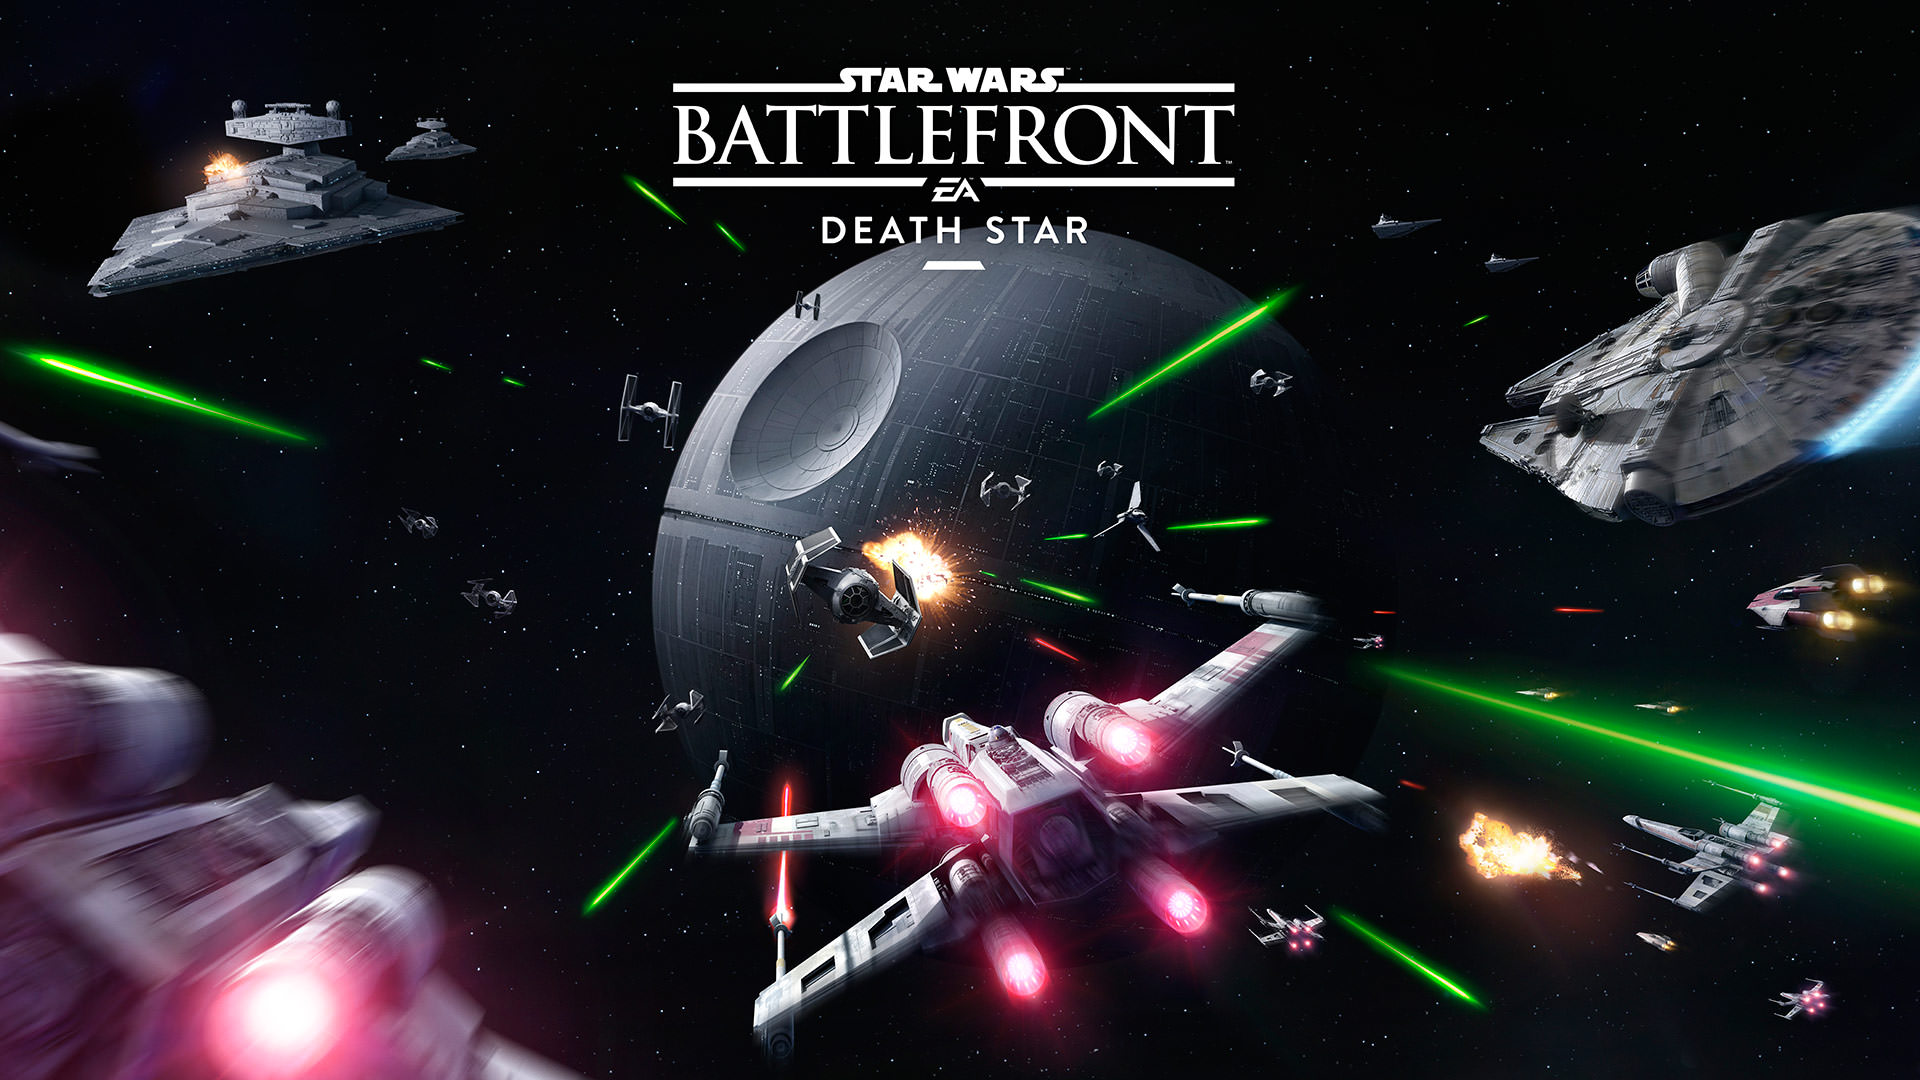 Star Wars: Battlefront Death Star DLC Announced